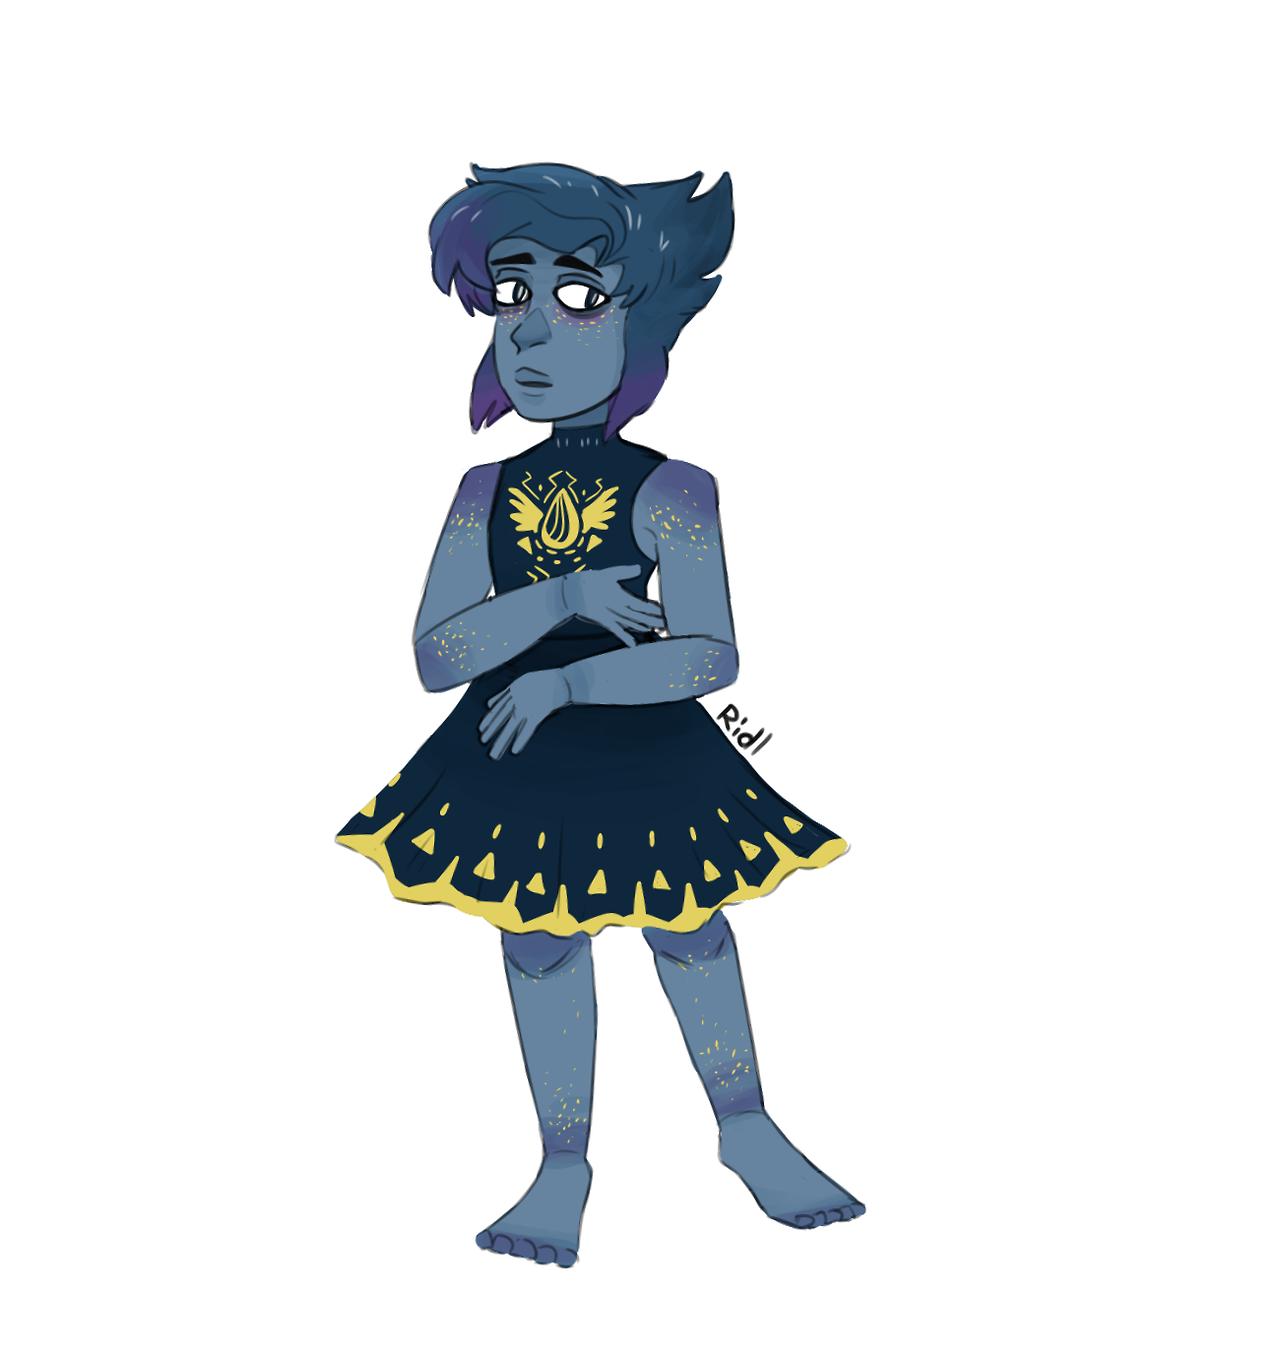 Wild Lapis appeared